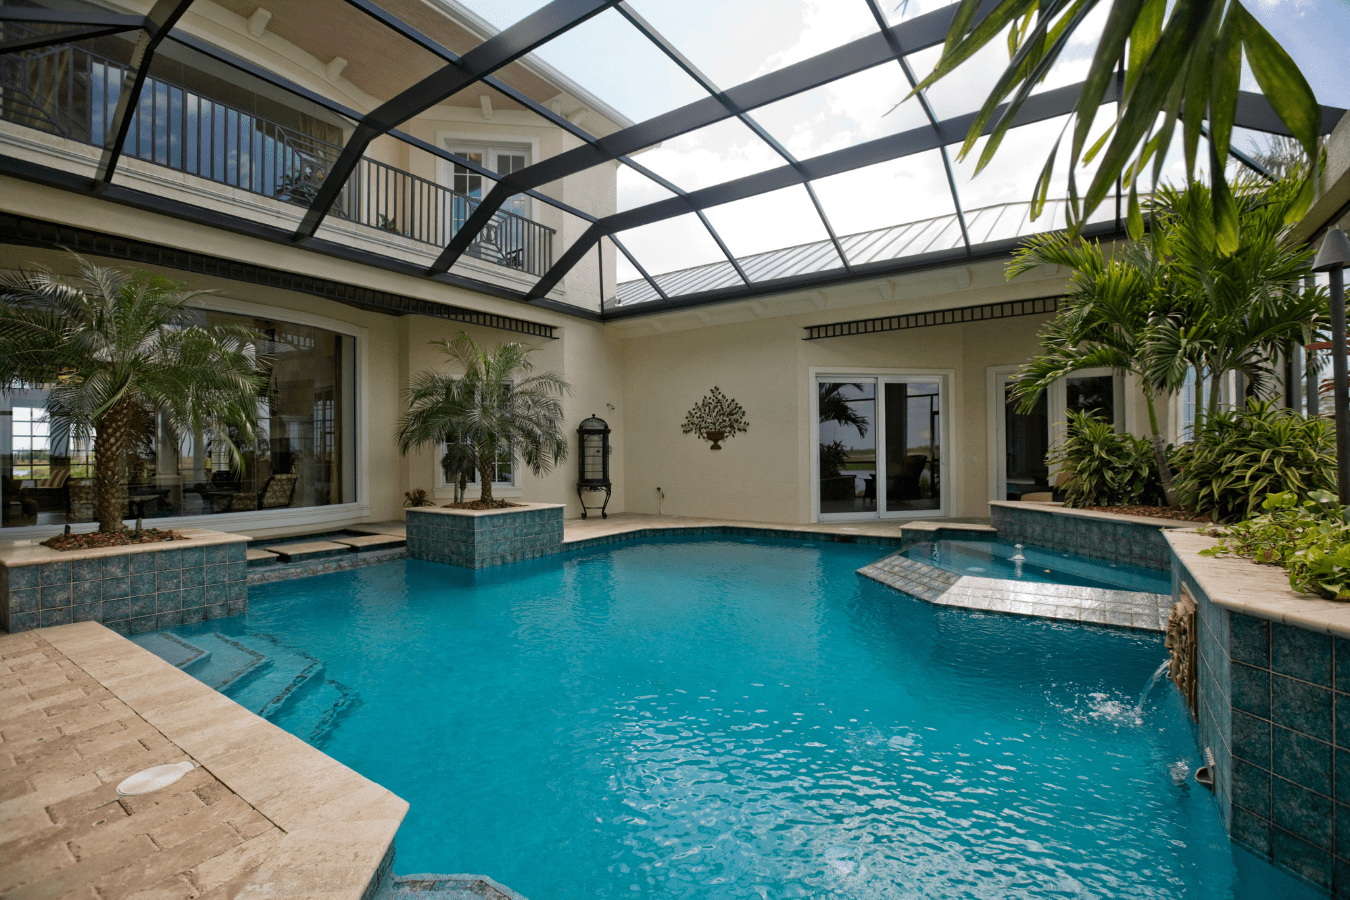 7 Ways To Make Your Pool Enclosure Area Even More Beautiful